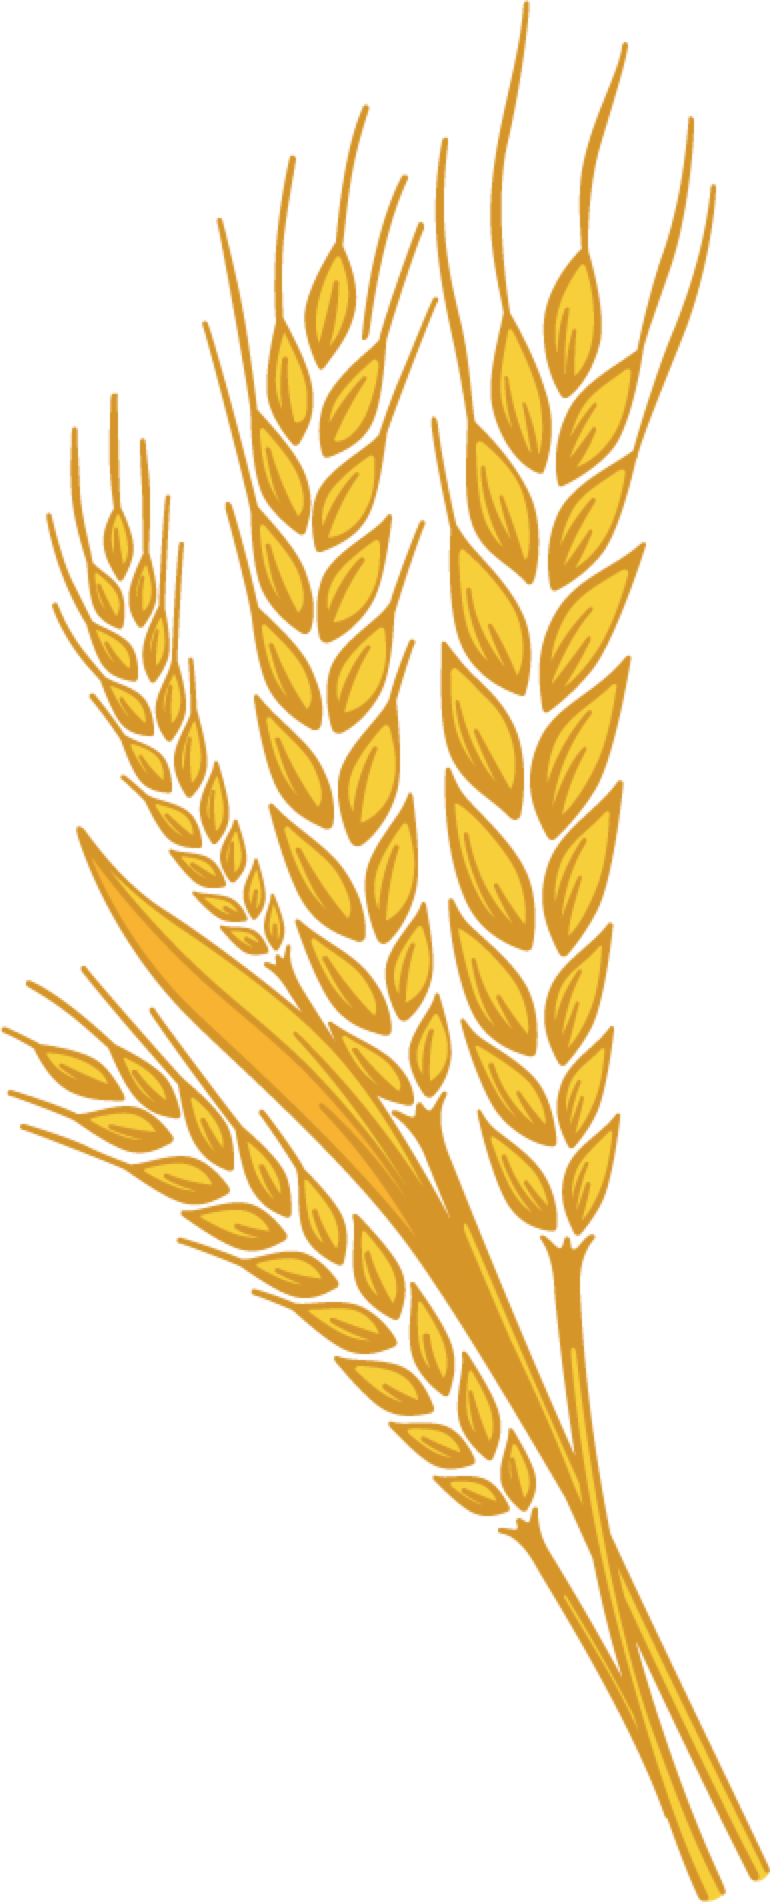 Png . Wheat clipart transparent background